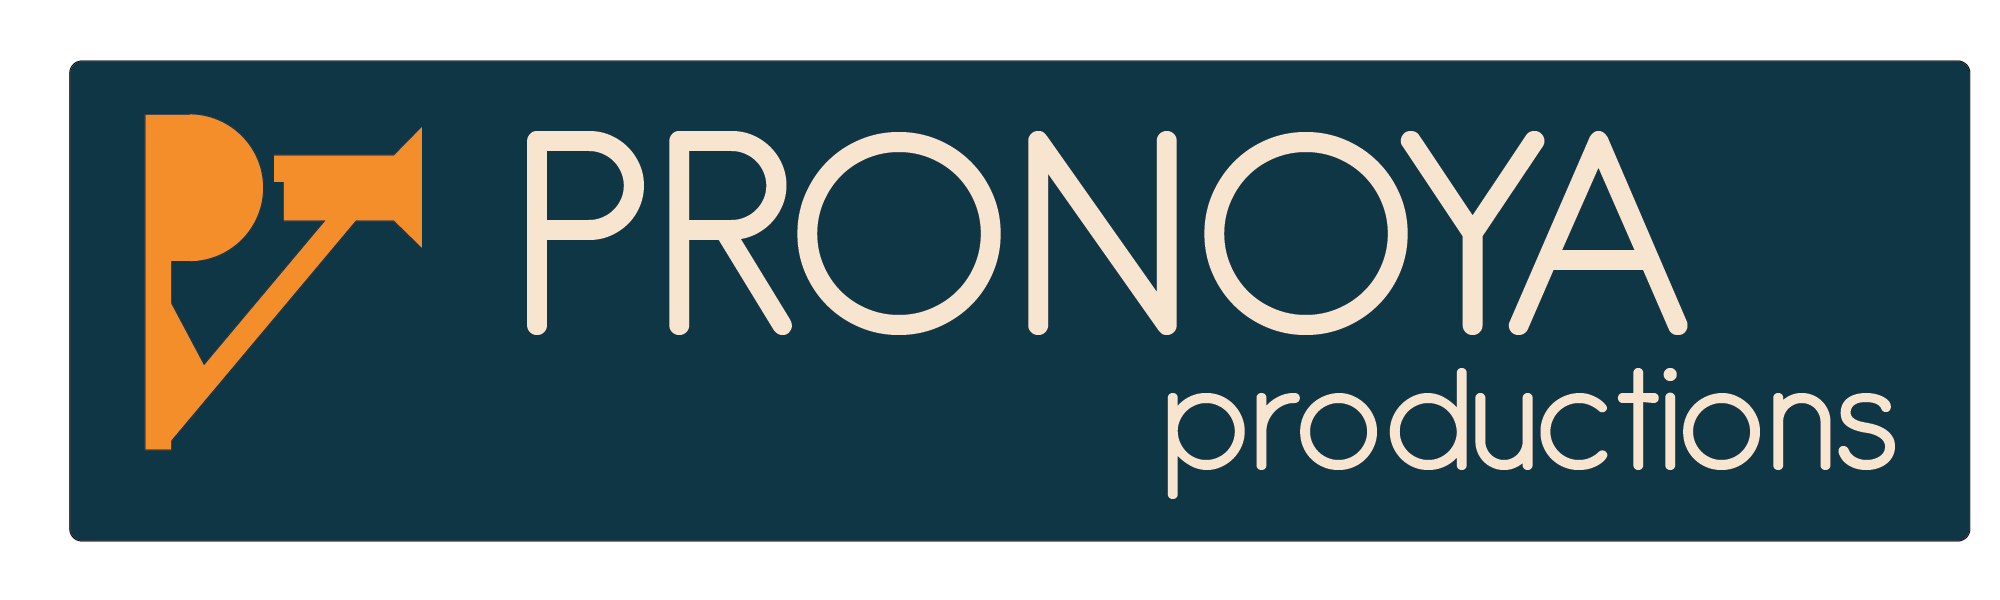 Pronoya productions